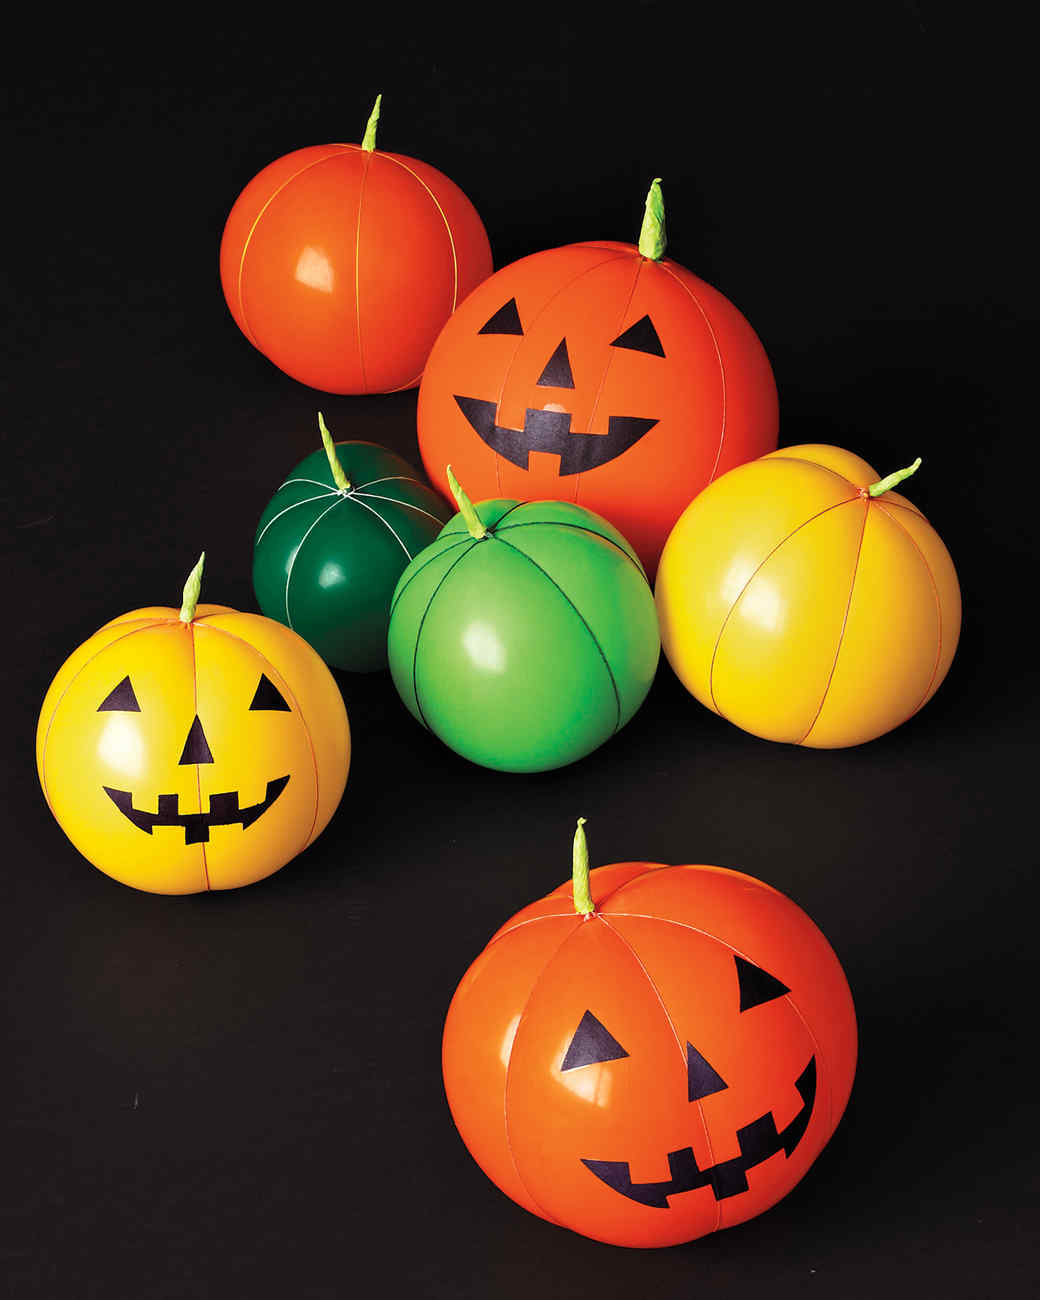 string-cinched-balloon-jack-o-lanterns-166-md110354.jpg